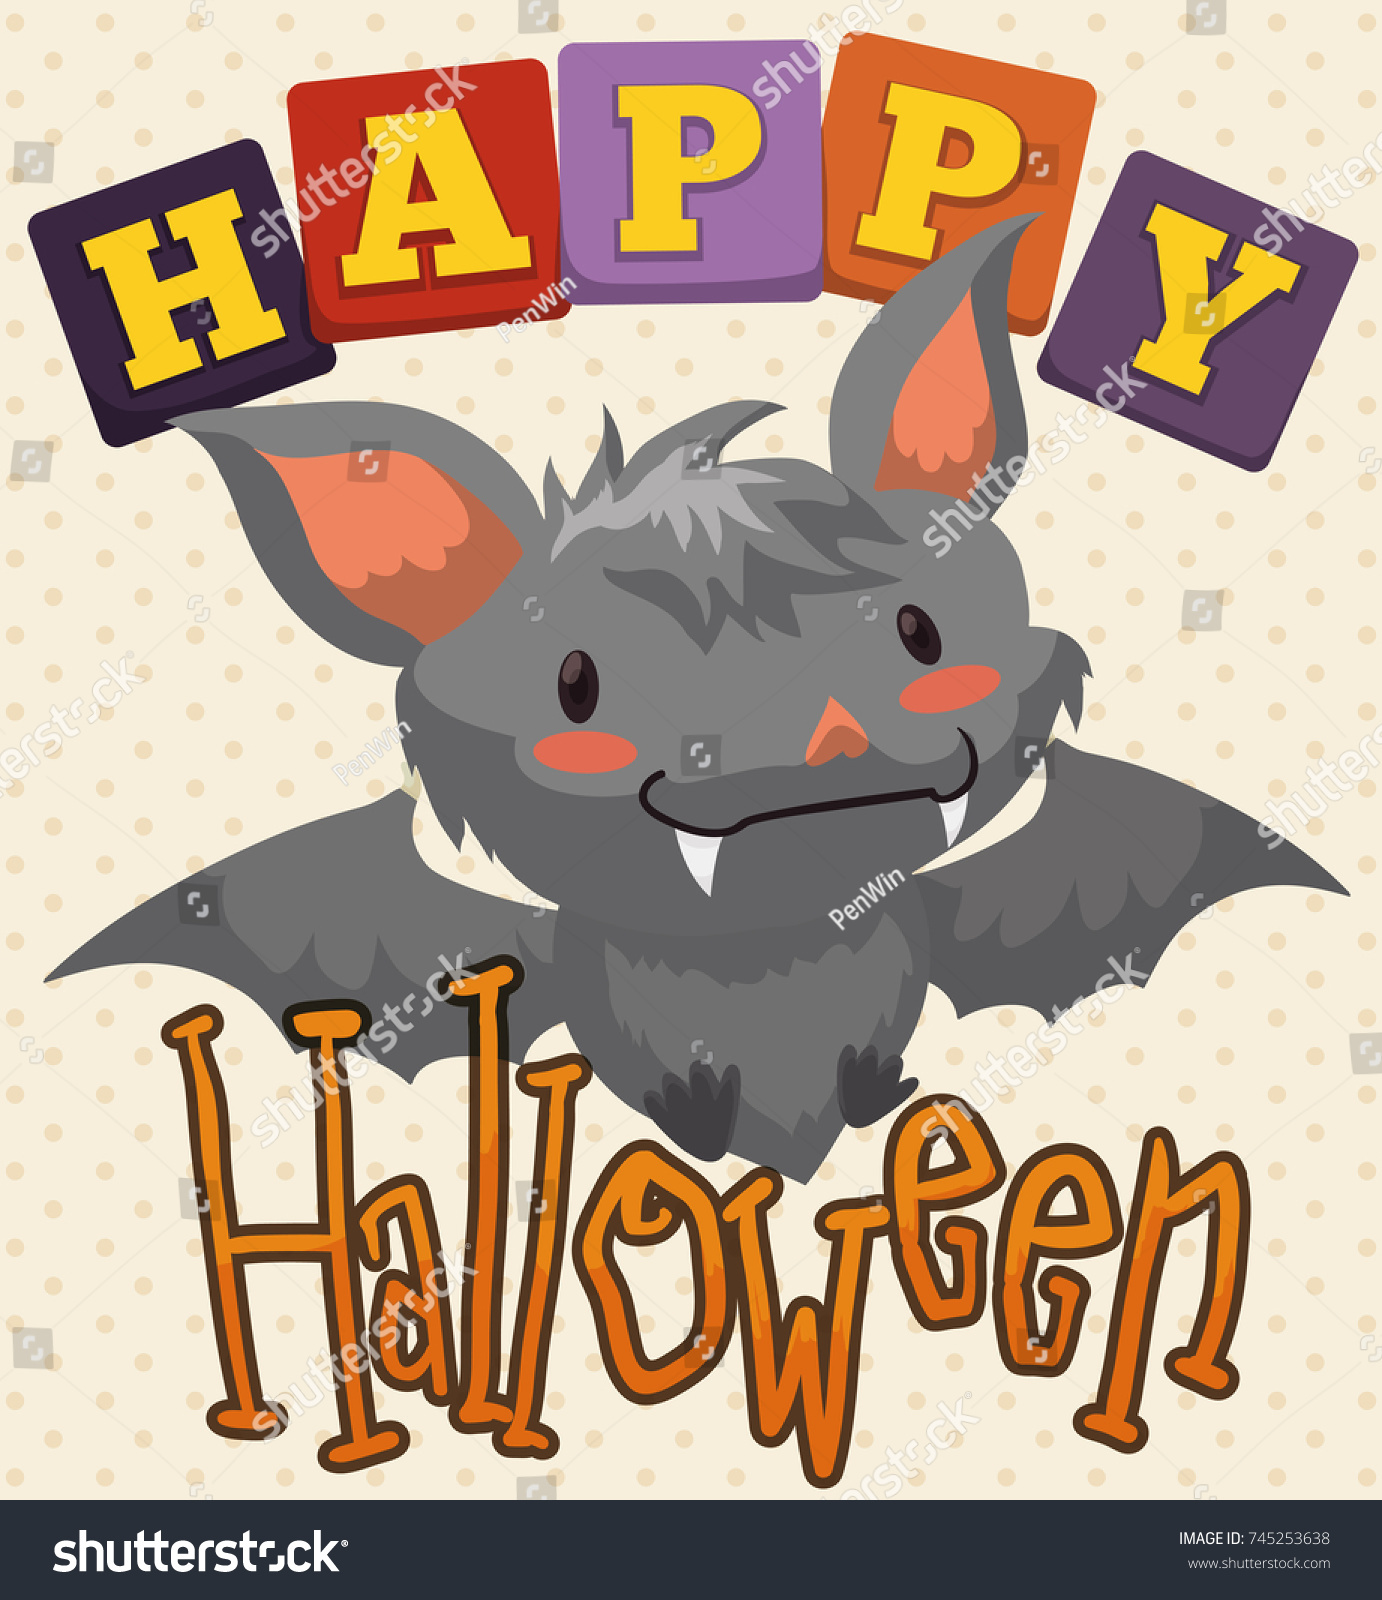 Poster greeting message cute baby bat stock vector 745253638 poster with greeting message and cute baby bat smiling at you in halloween celebration for children kristyandbryce Images